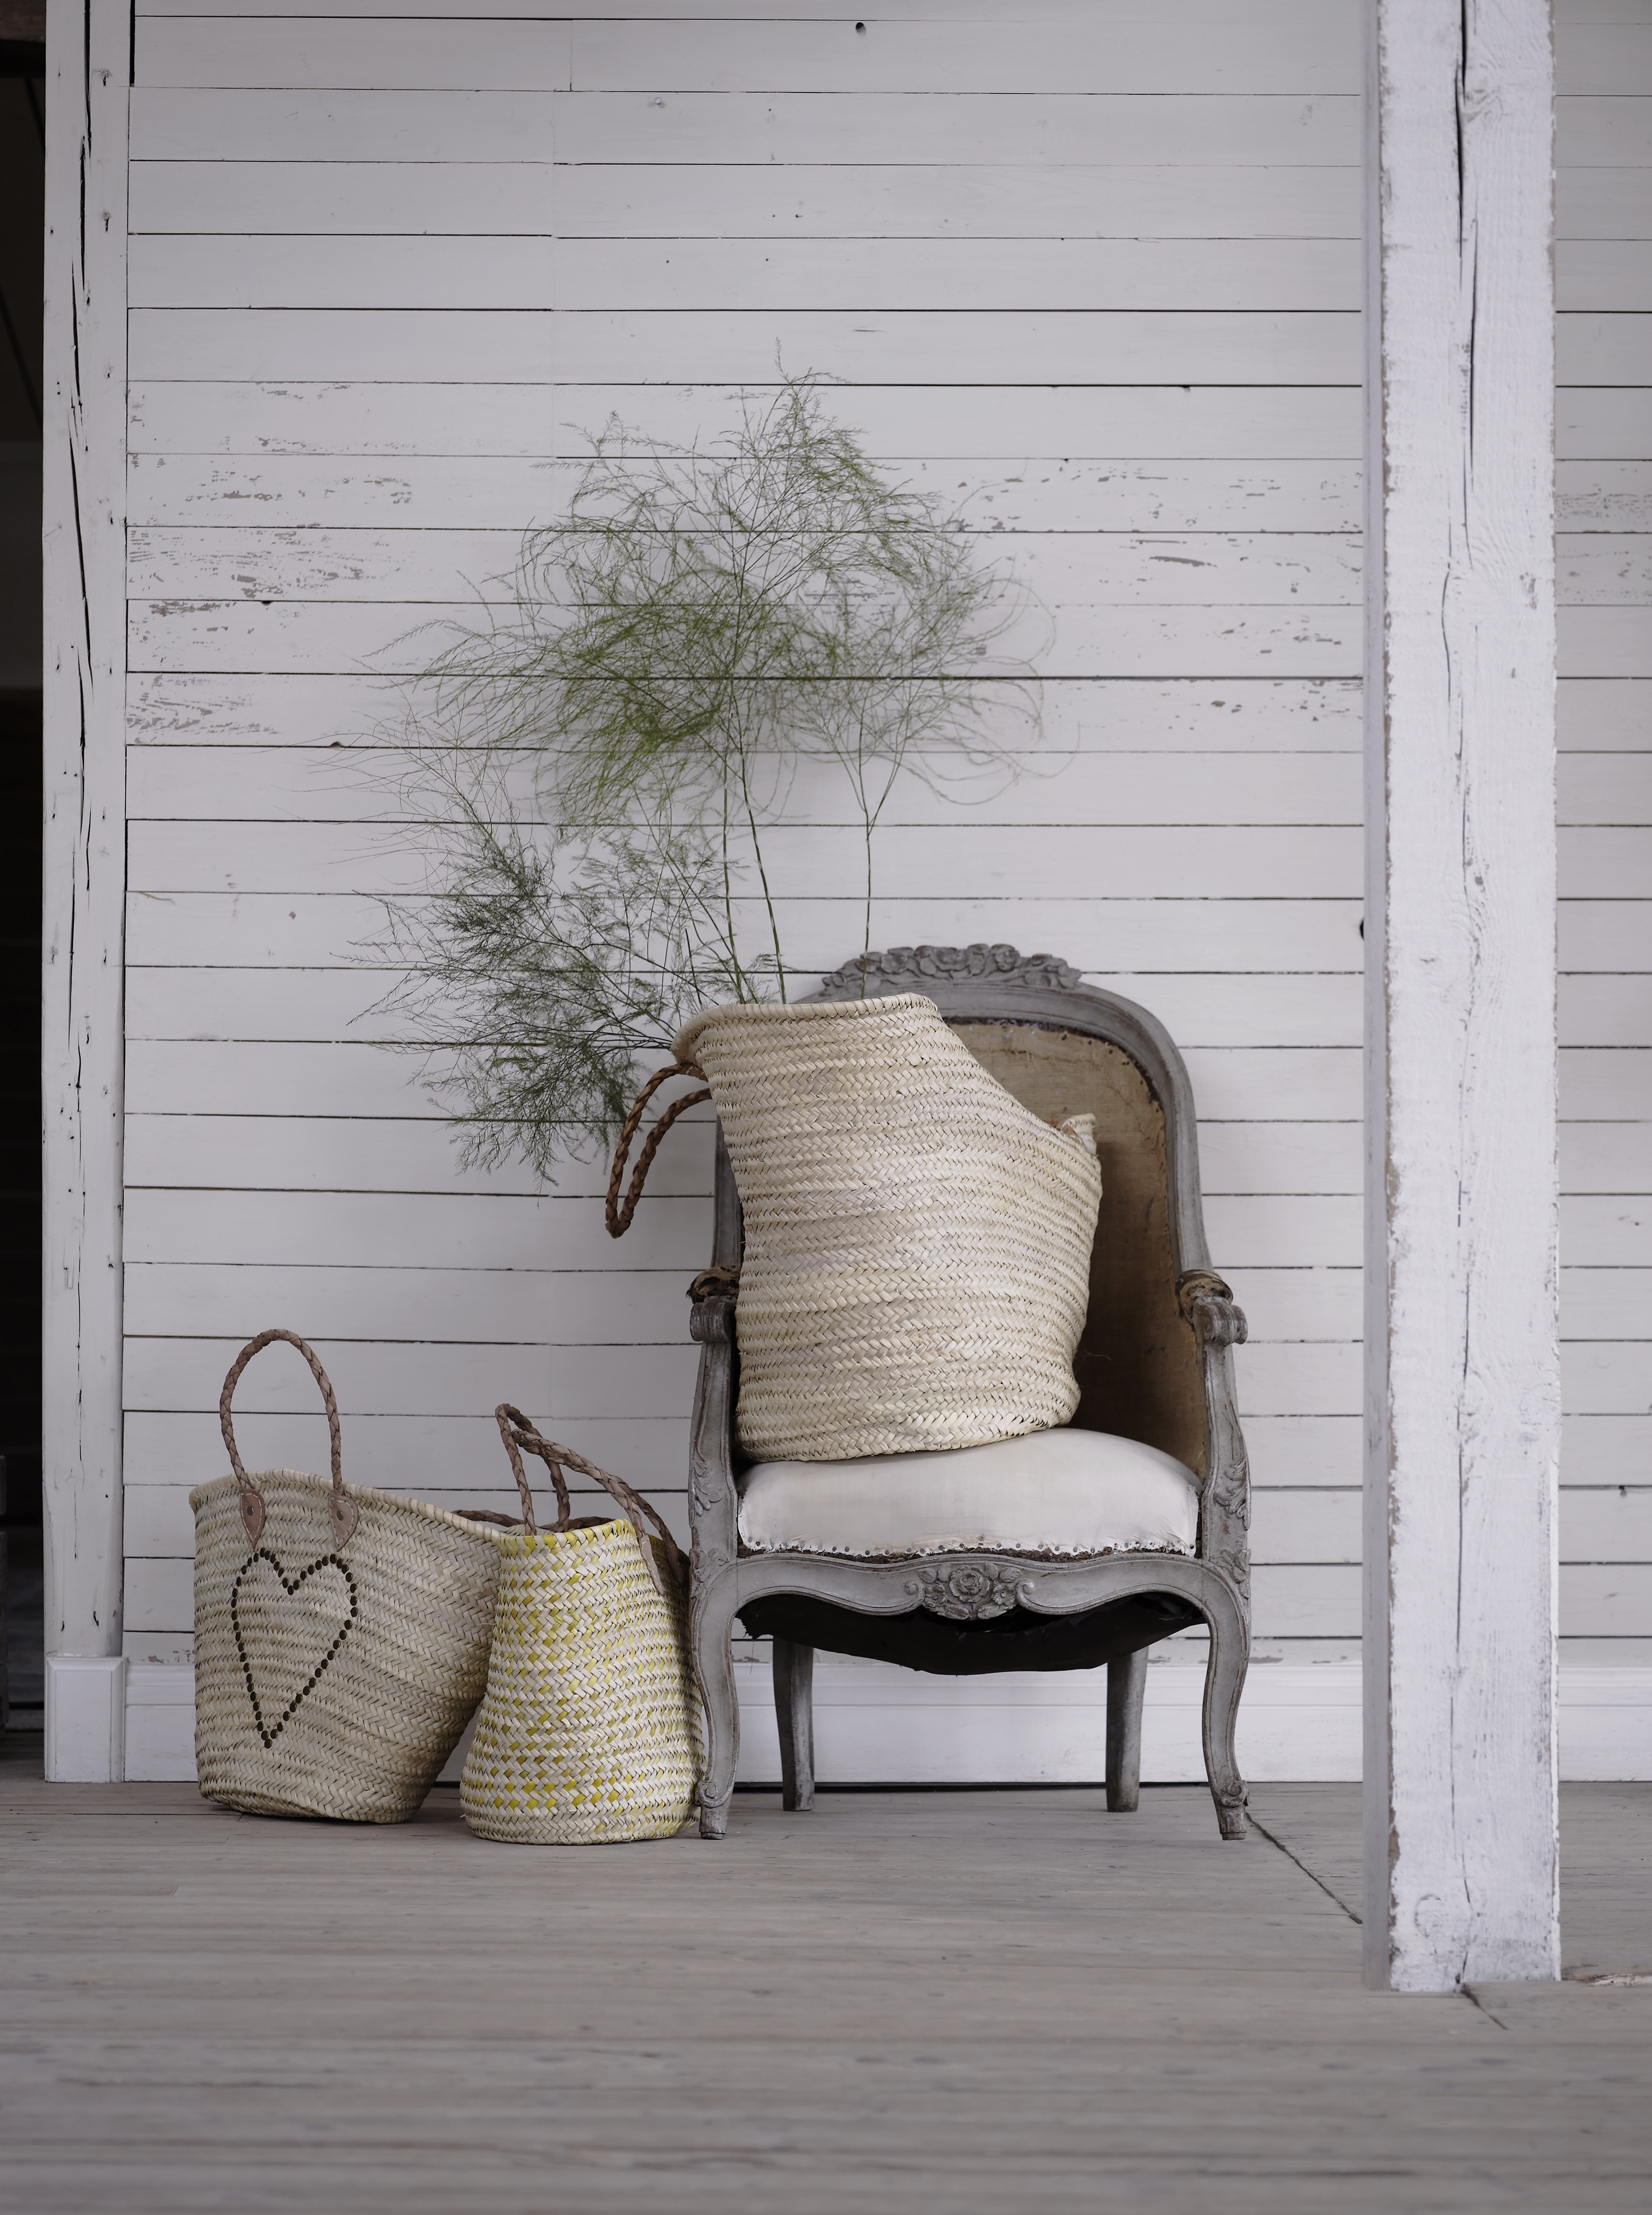 Lifestyle image of extra large Moroccan baskets